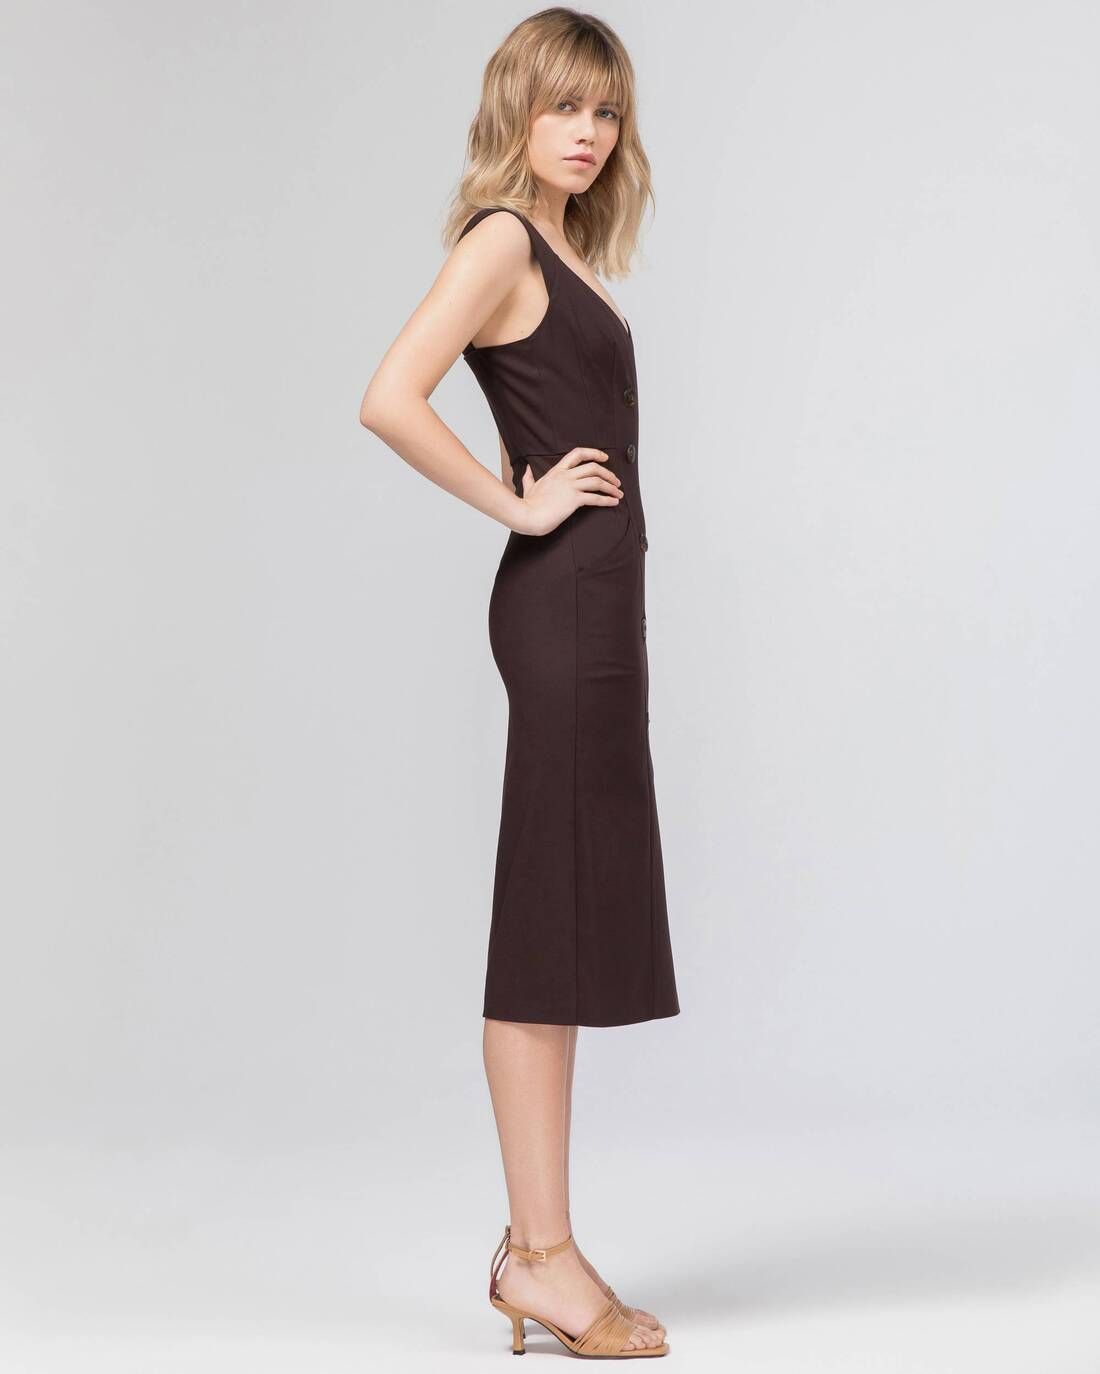 Double-breasted dress with triangular neckline